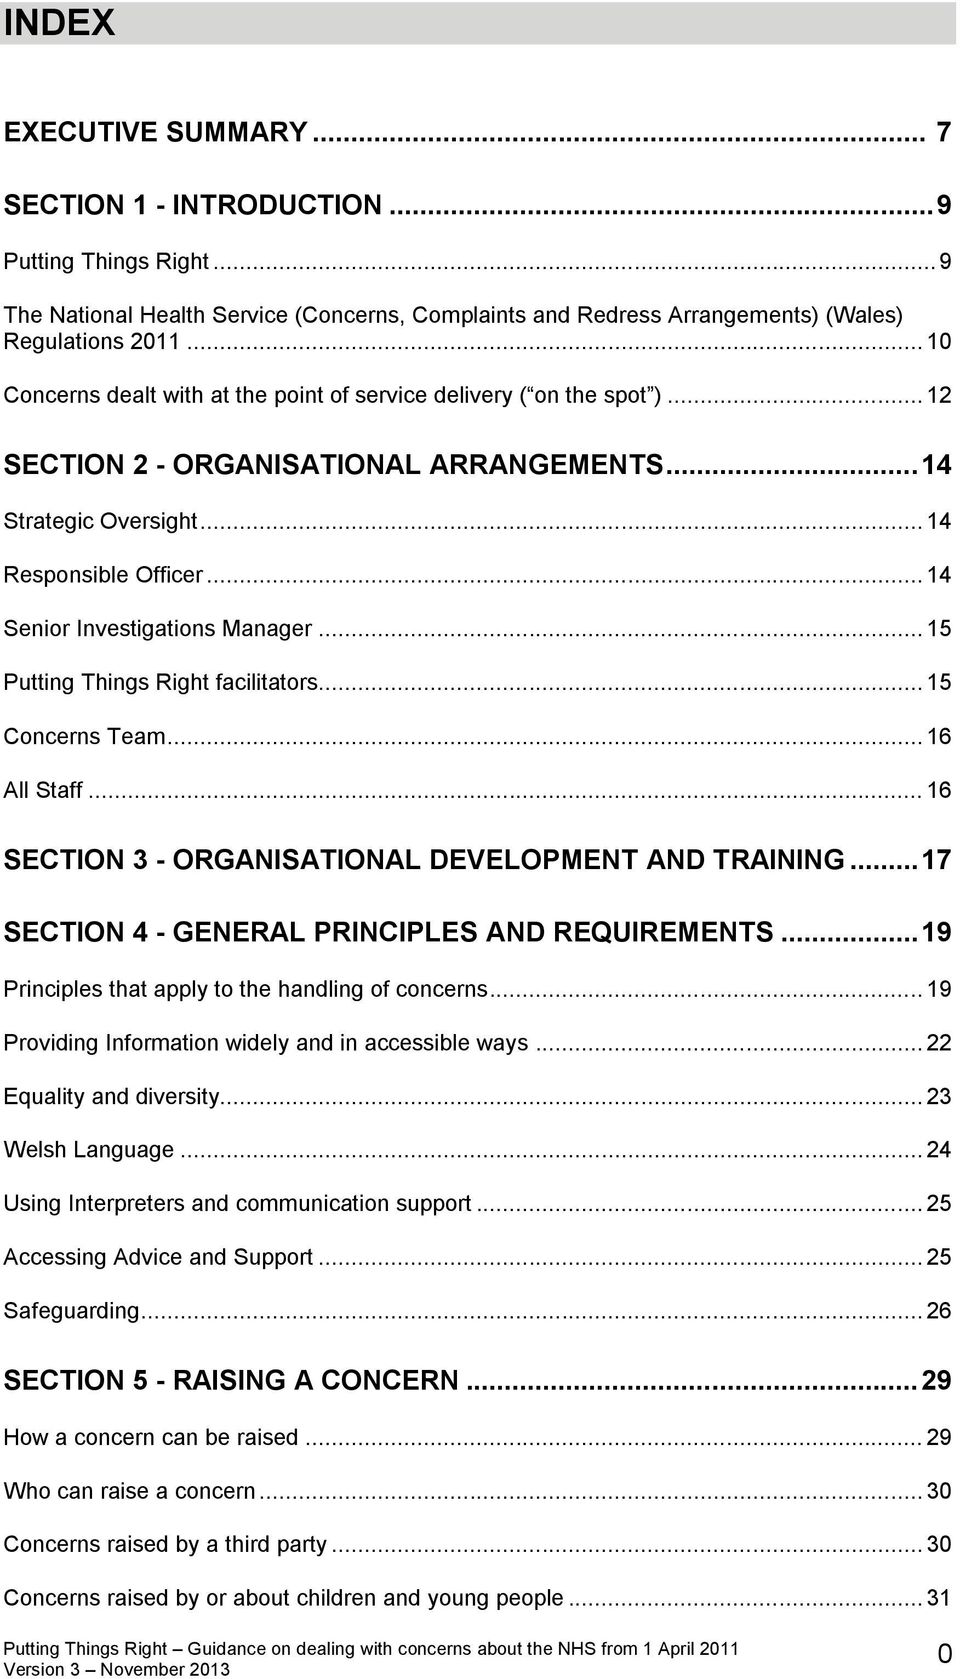 .. 14 Senior Investigations Manager... 15 Putting Things Right facilitators... 15 Concerns Team... 16 All Staff... 16 SECTION 3 - ORGANISATIONAL DEVELOPMENT AND TRAINING.